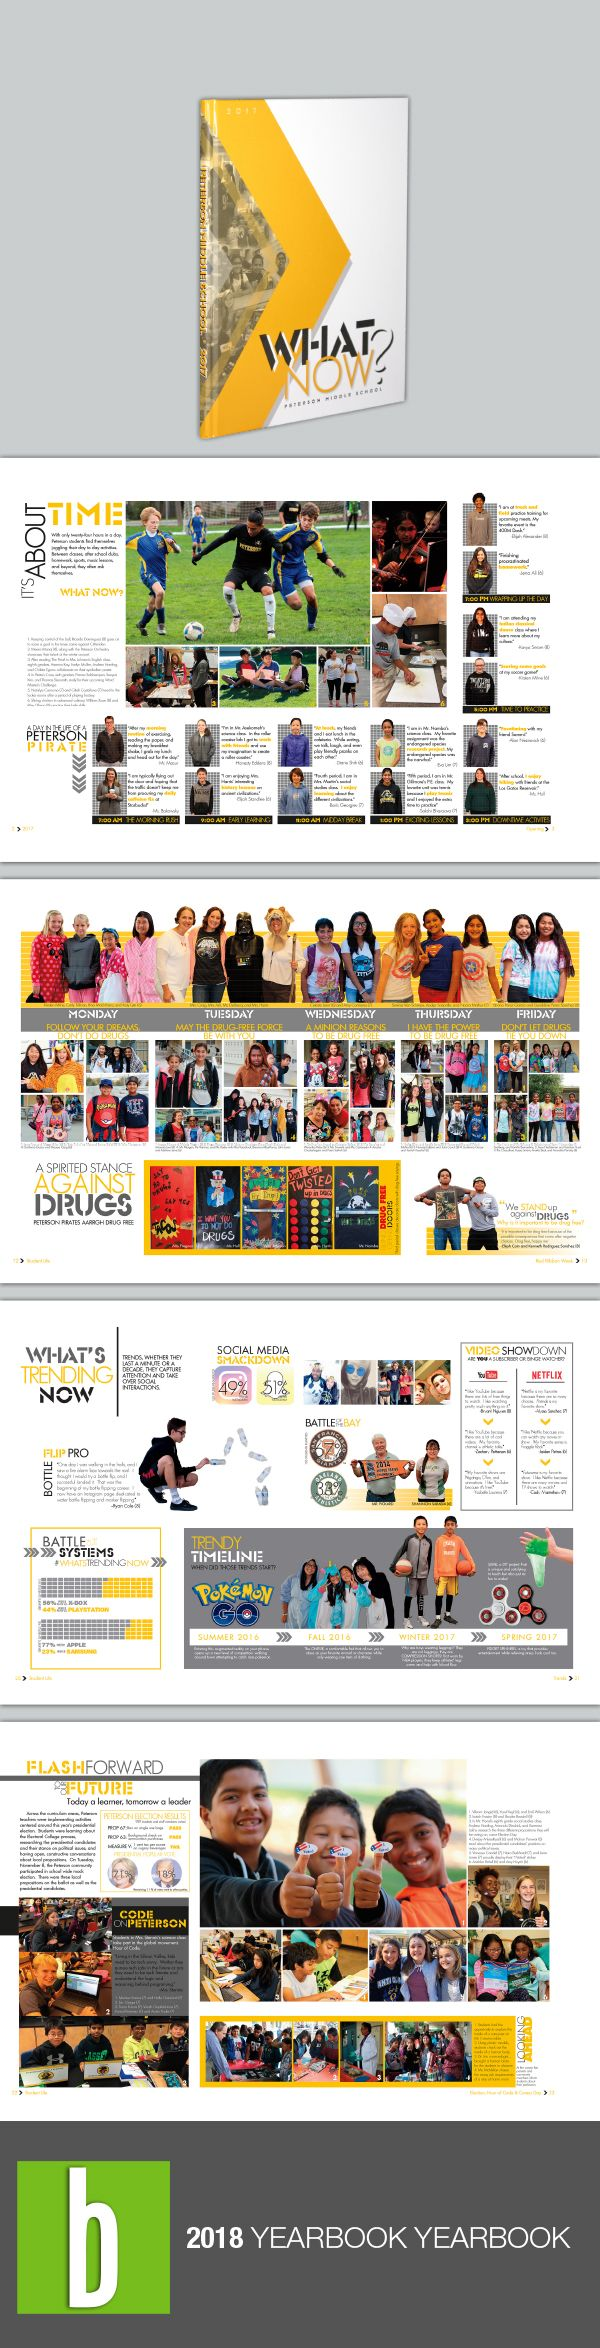 best yearbook images on pinterest yearbook layouts